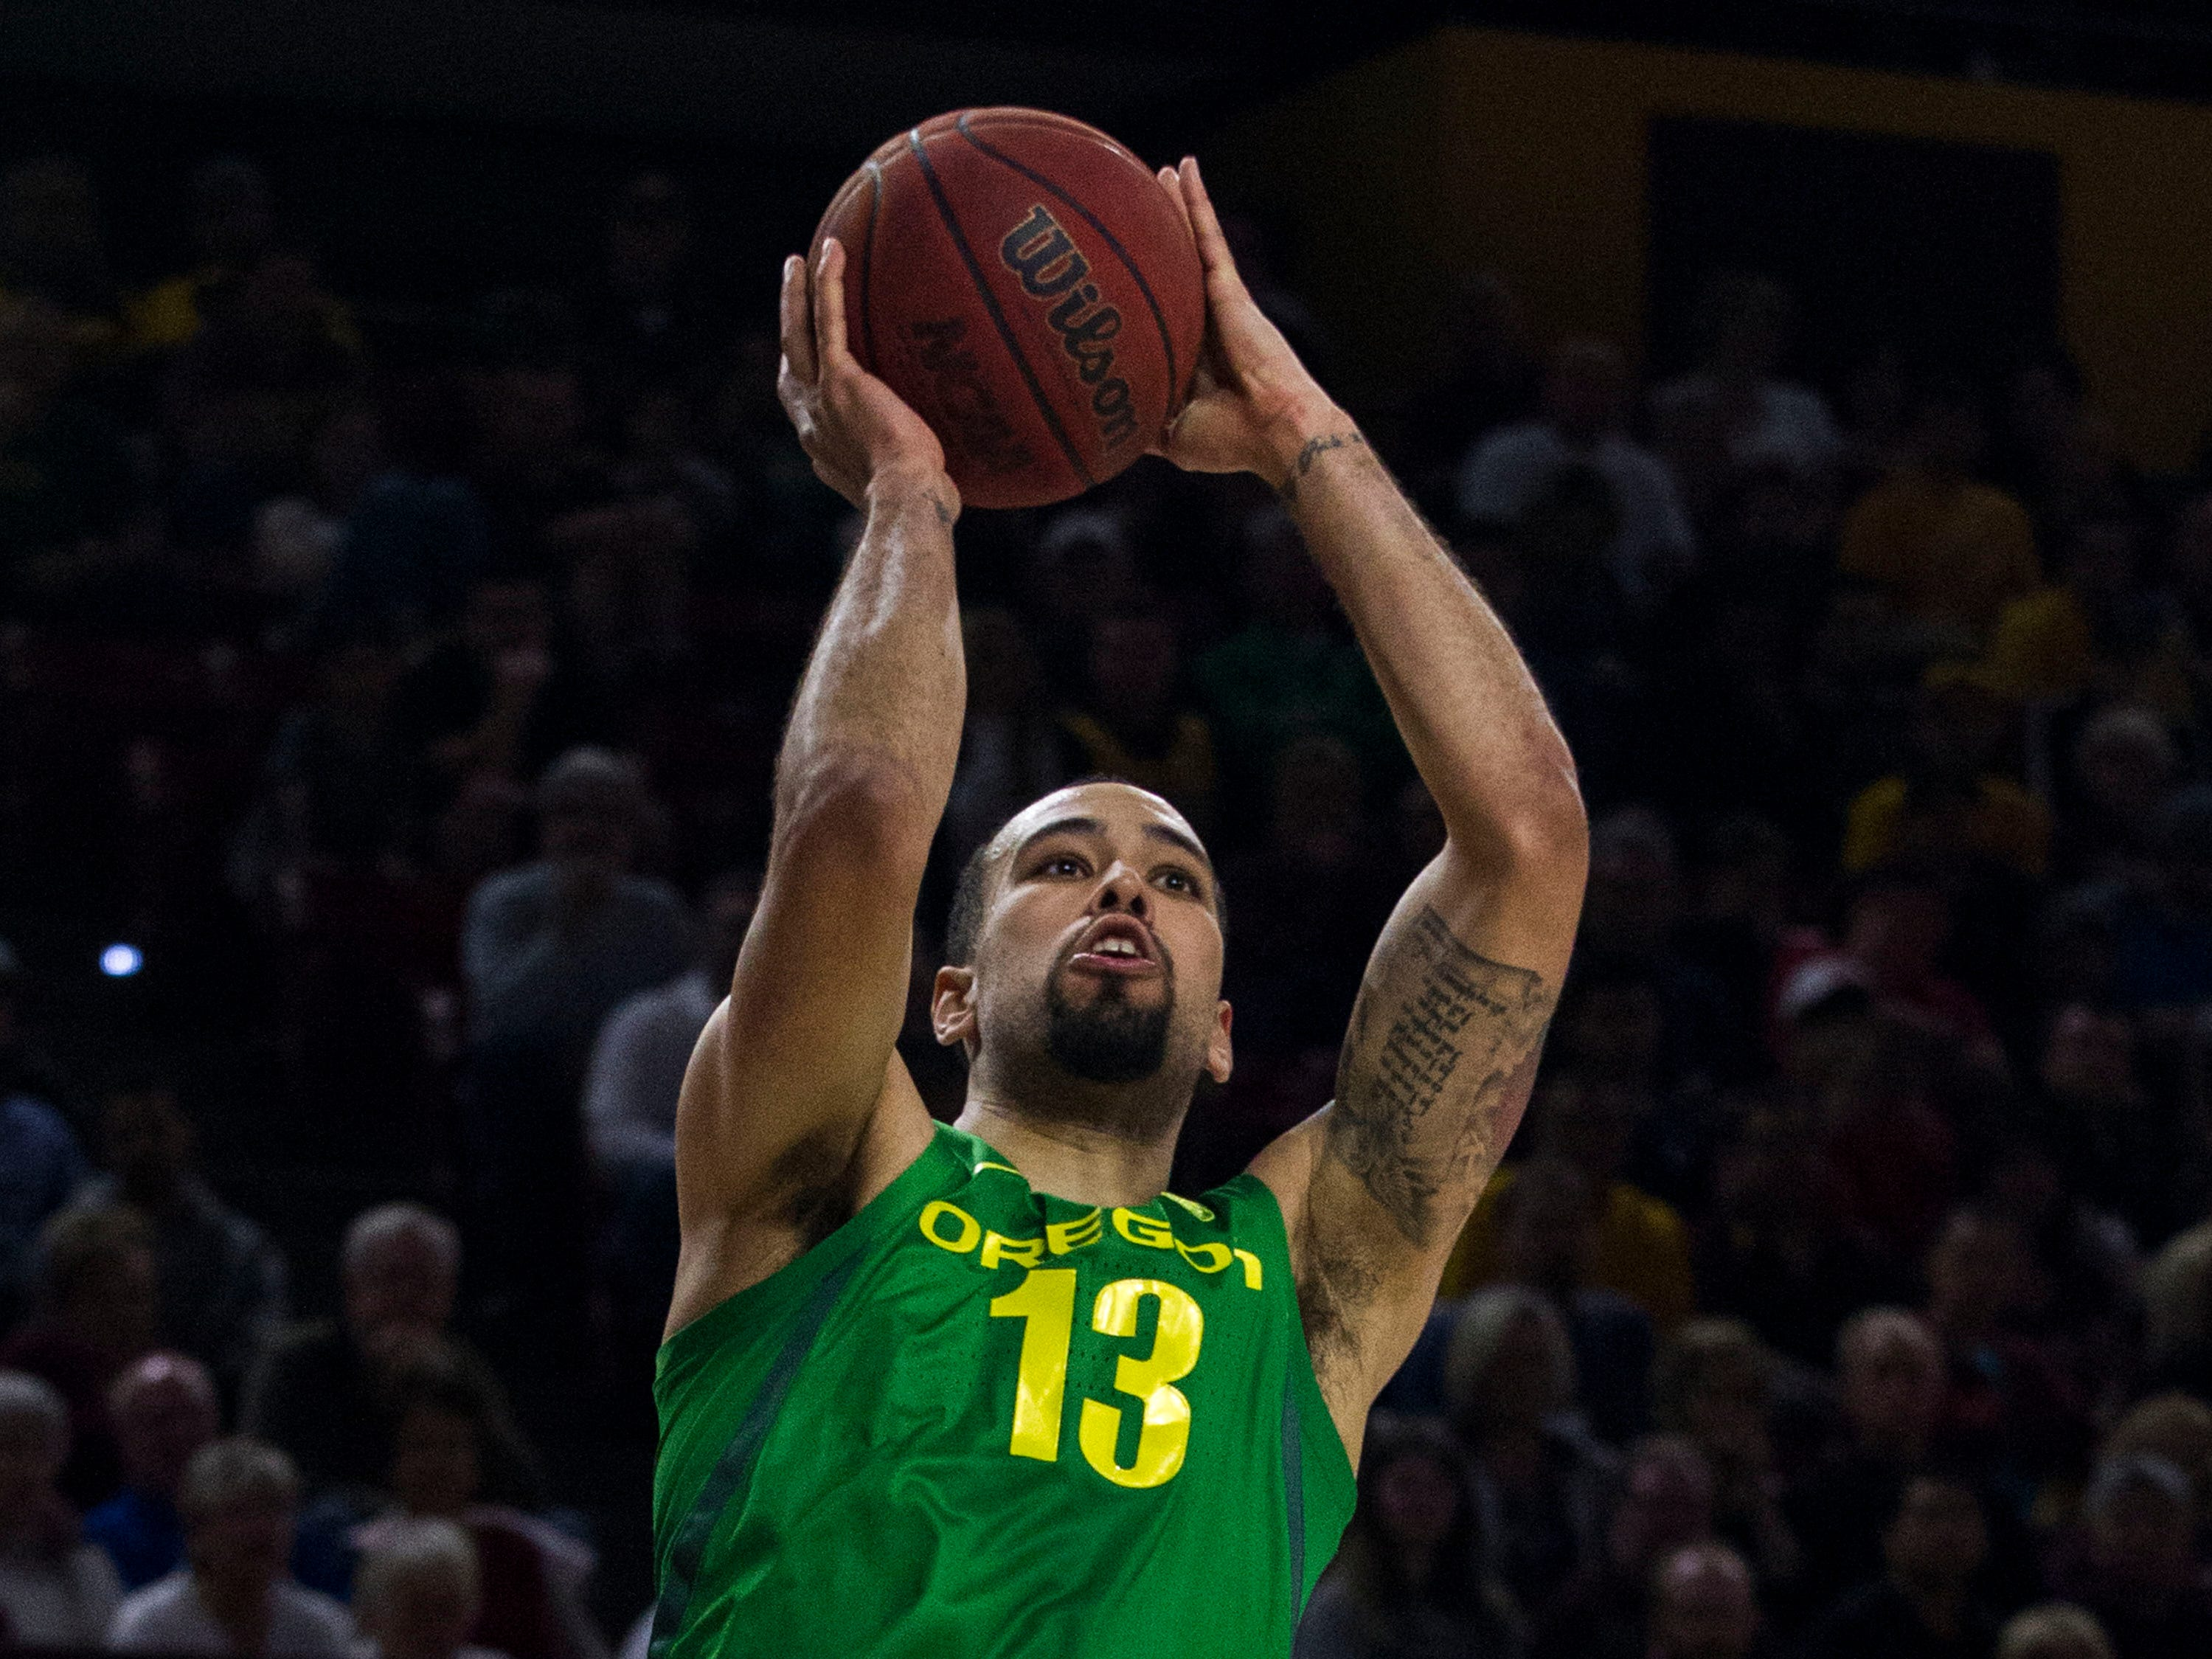 Oregon's Paul White (13) puts up a shot against Arizona State's Zylan Cheatham (45) during the first half, Saturday, Jan. 19, 2019, in Tempe, Ariz. (AP Photo/Darryl Webb)